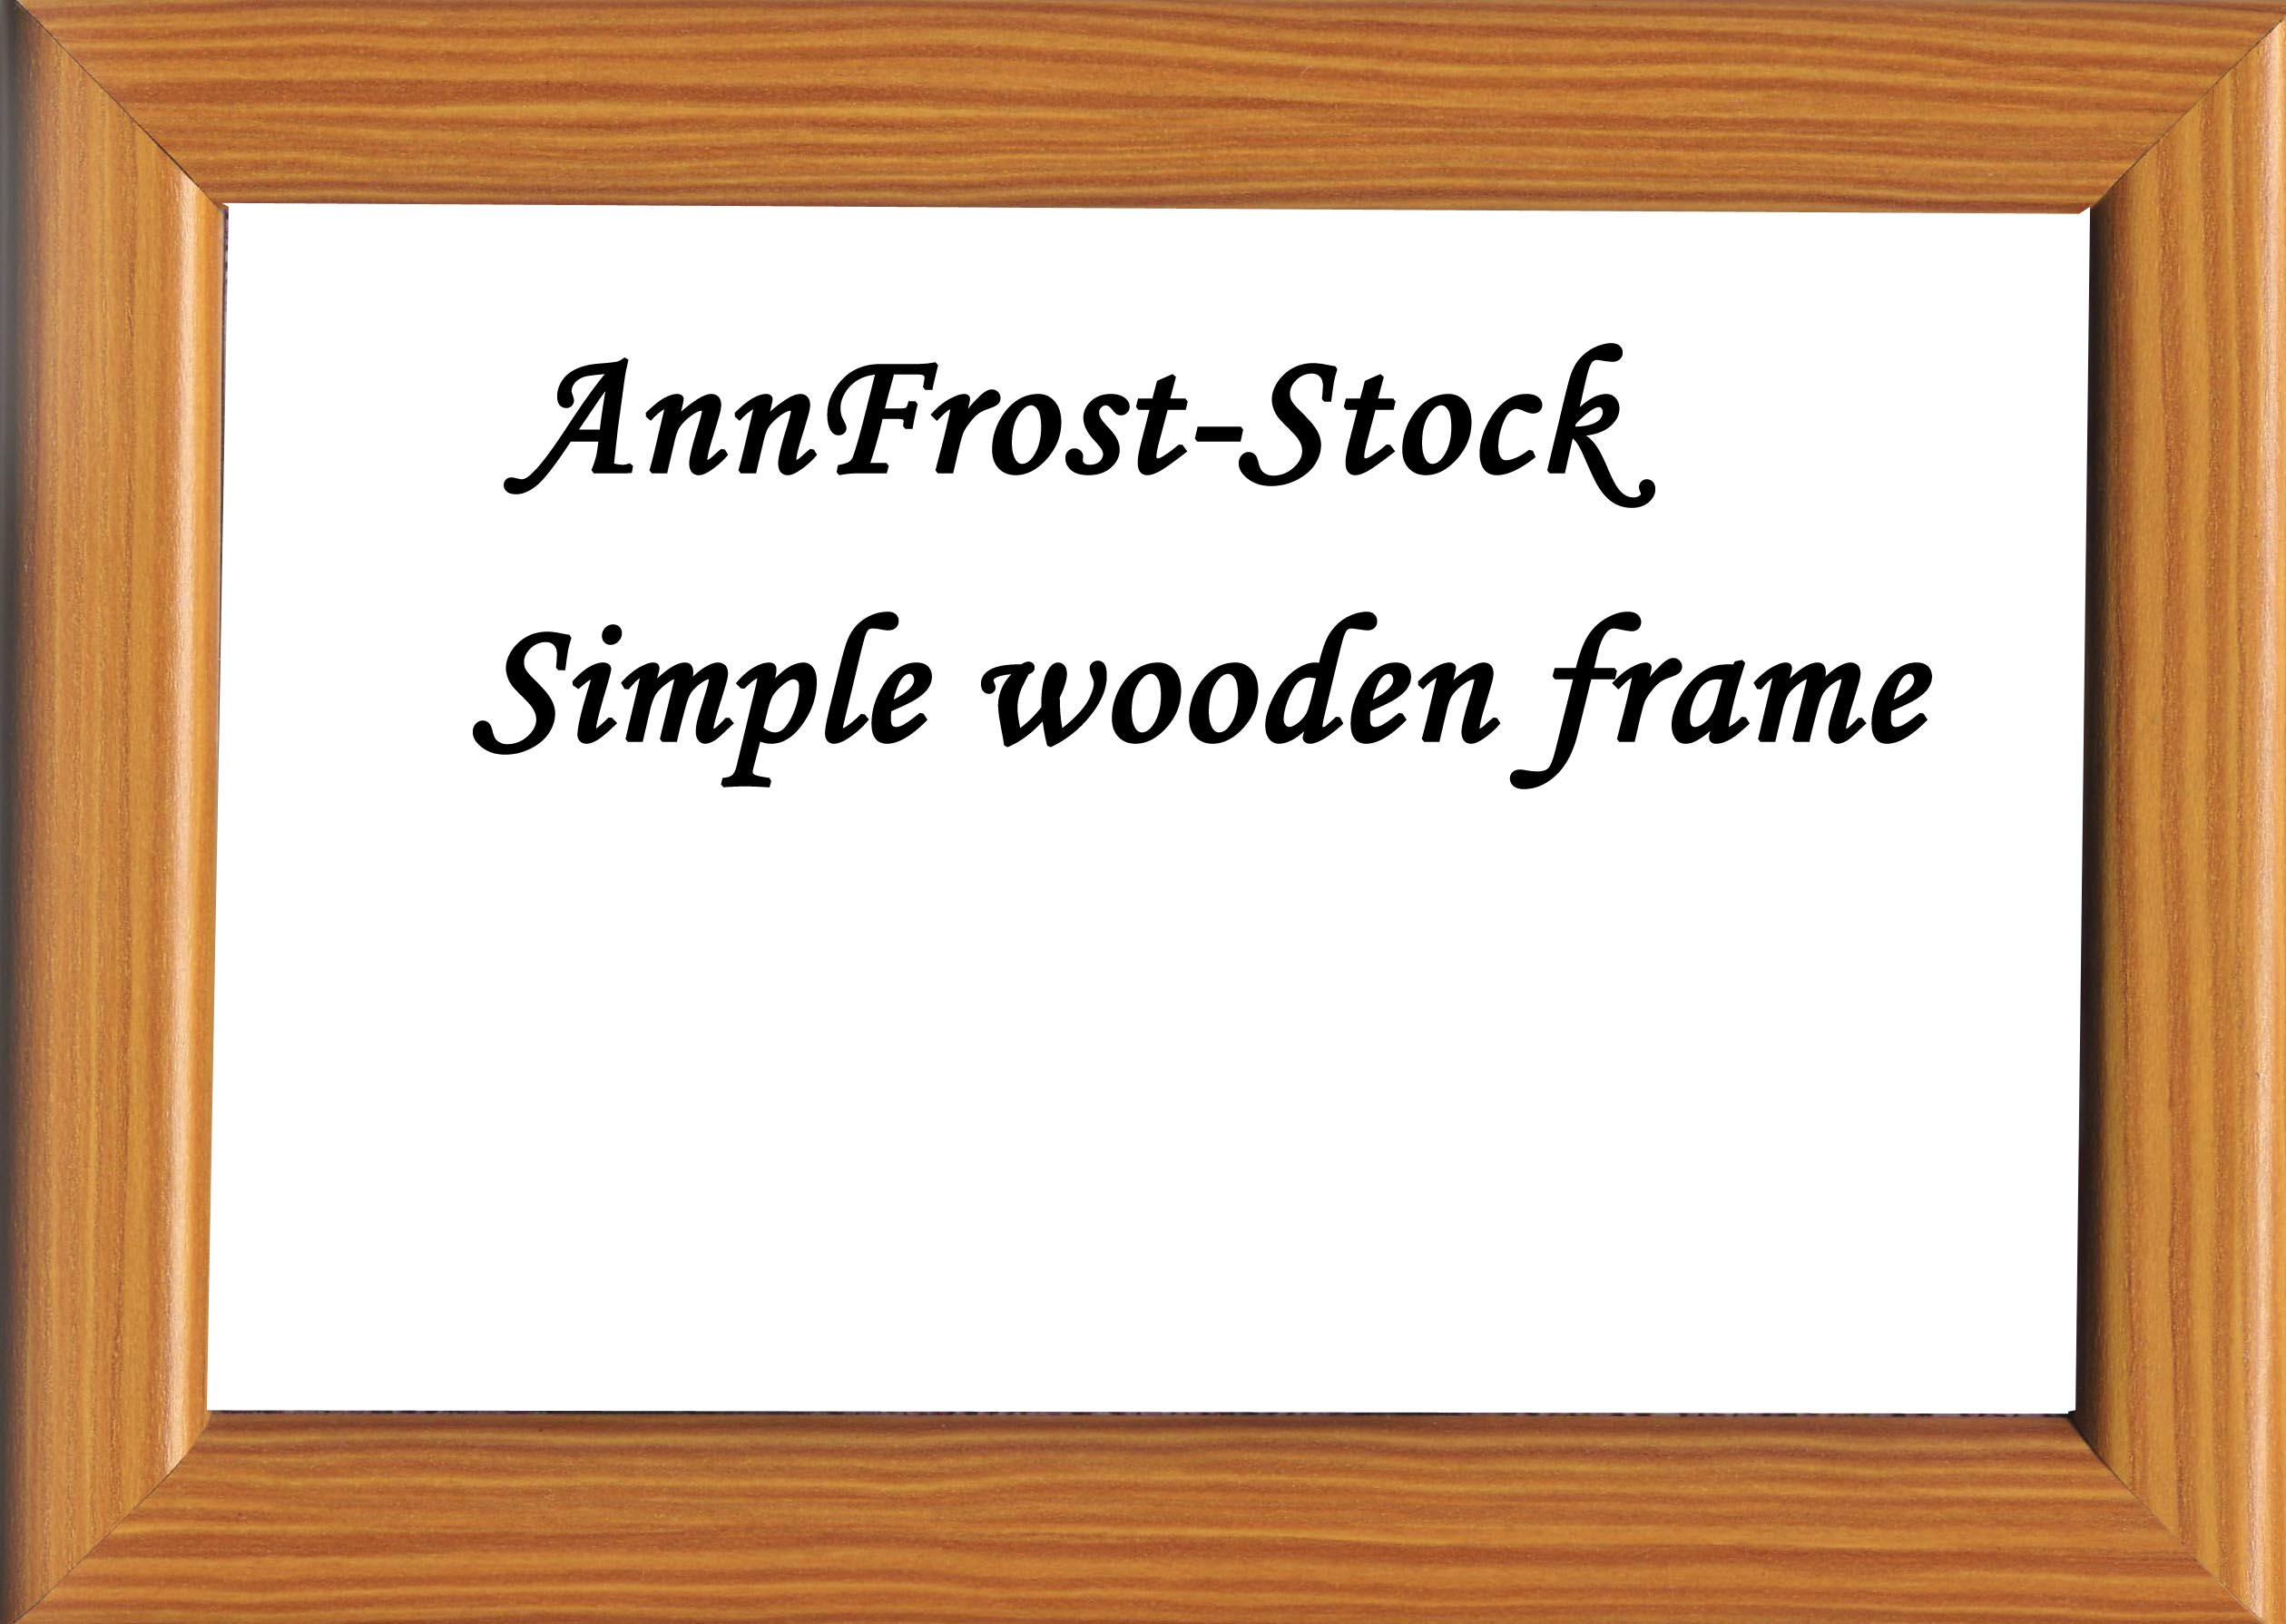 simple wooden frame by annfrost stock on deviantart